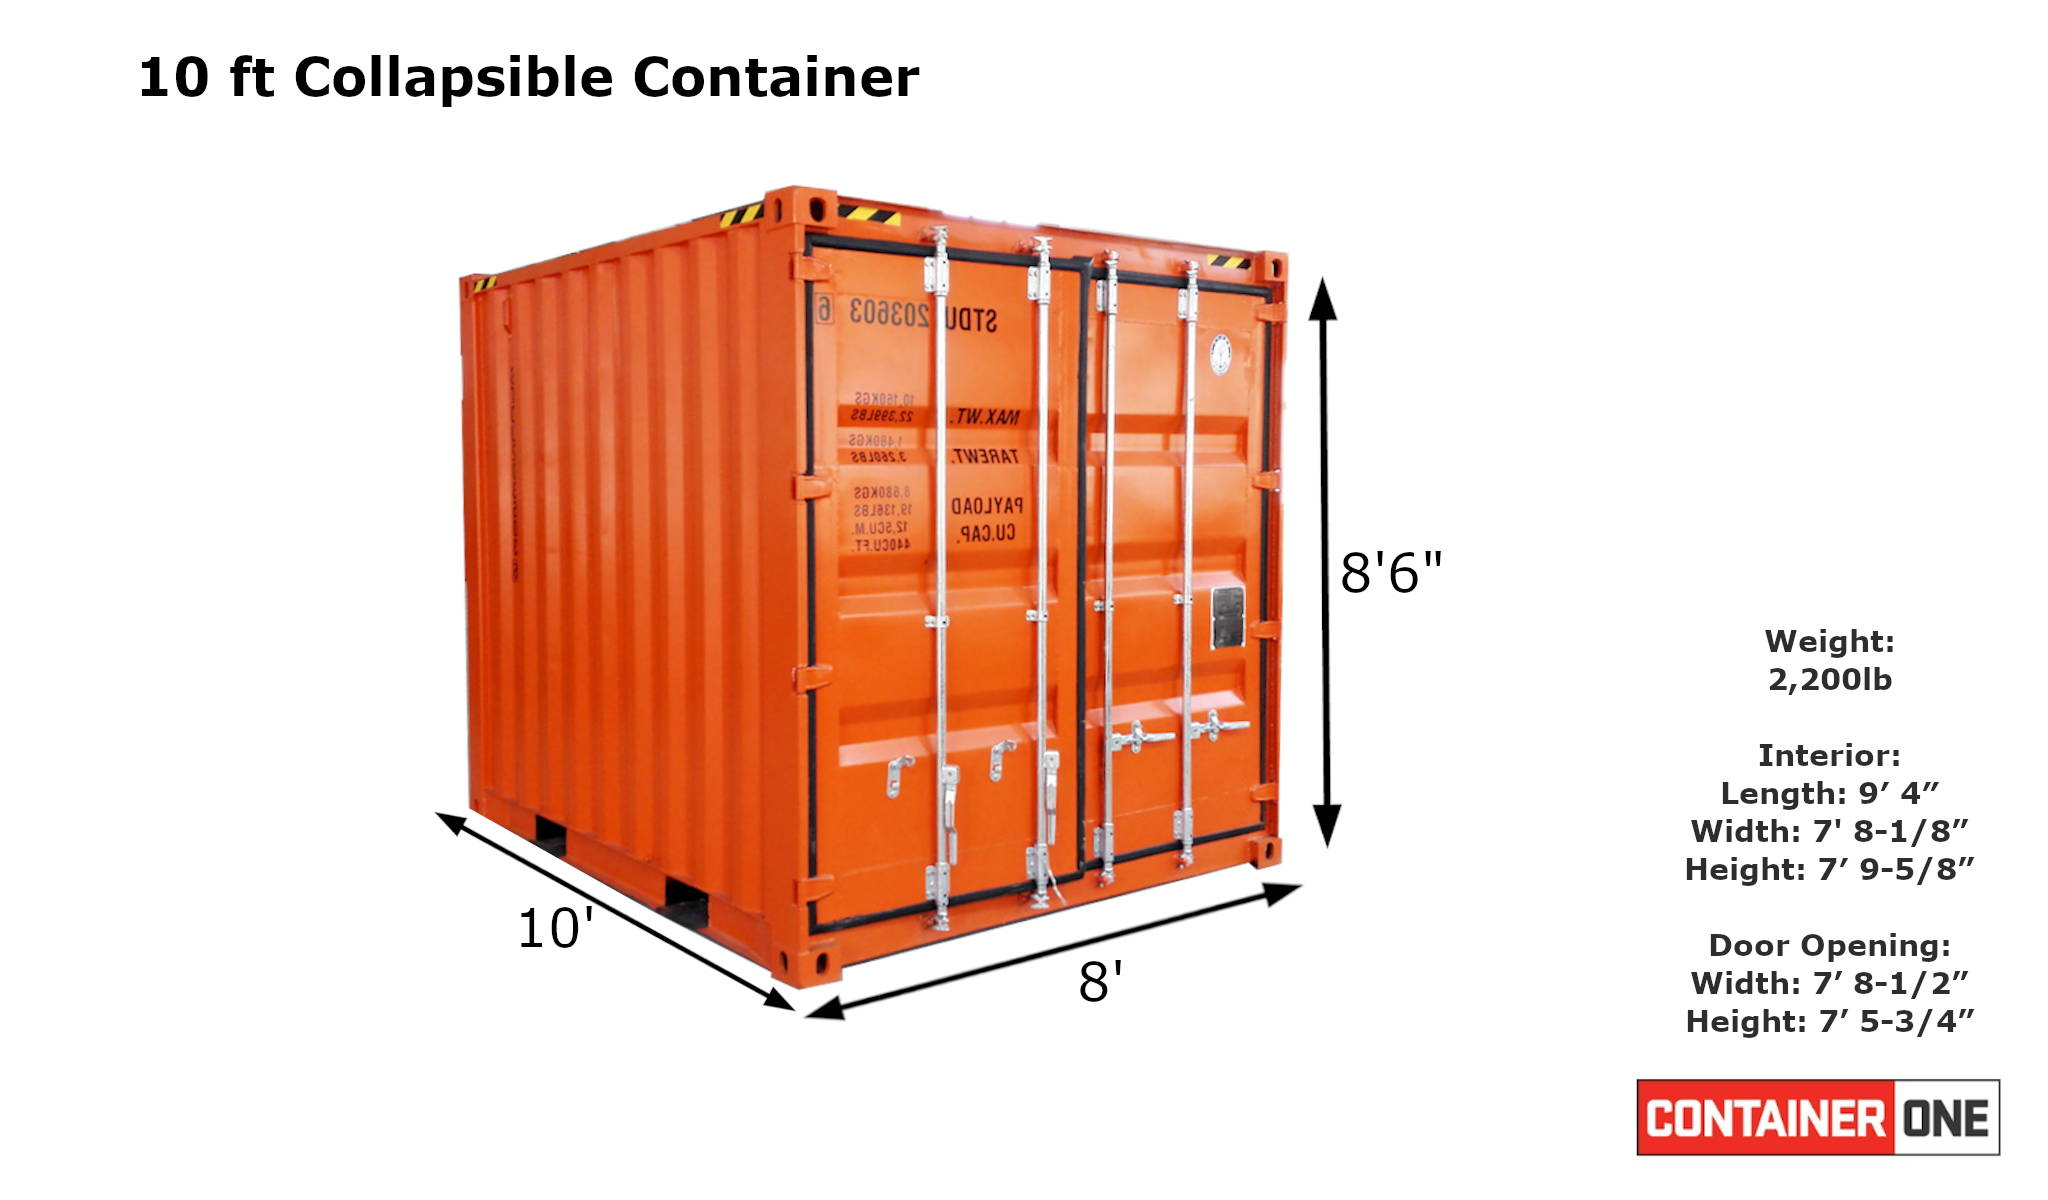 10 foot collapsible shipping container specifications